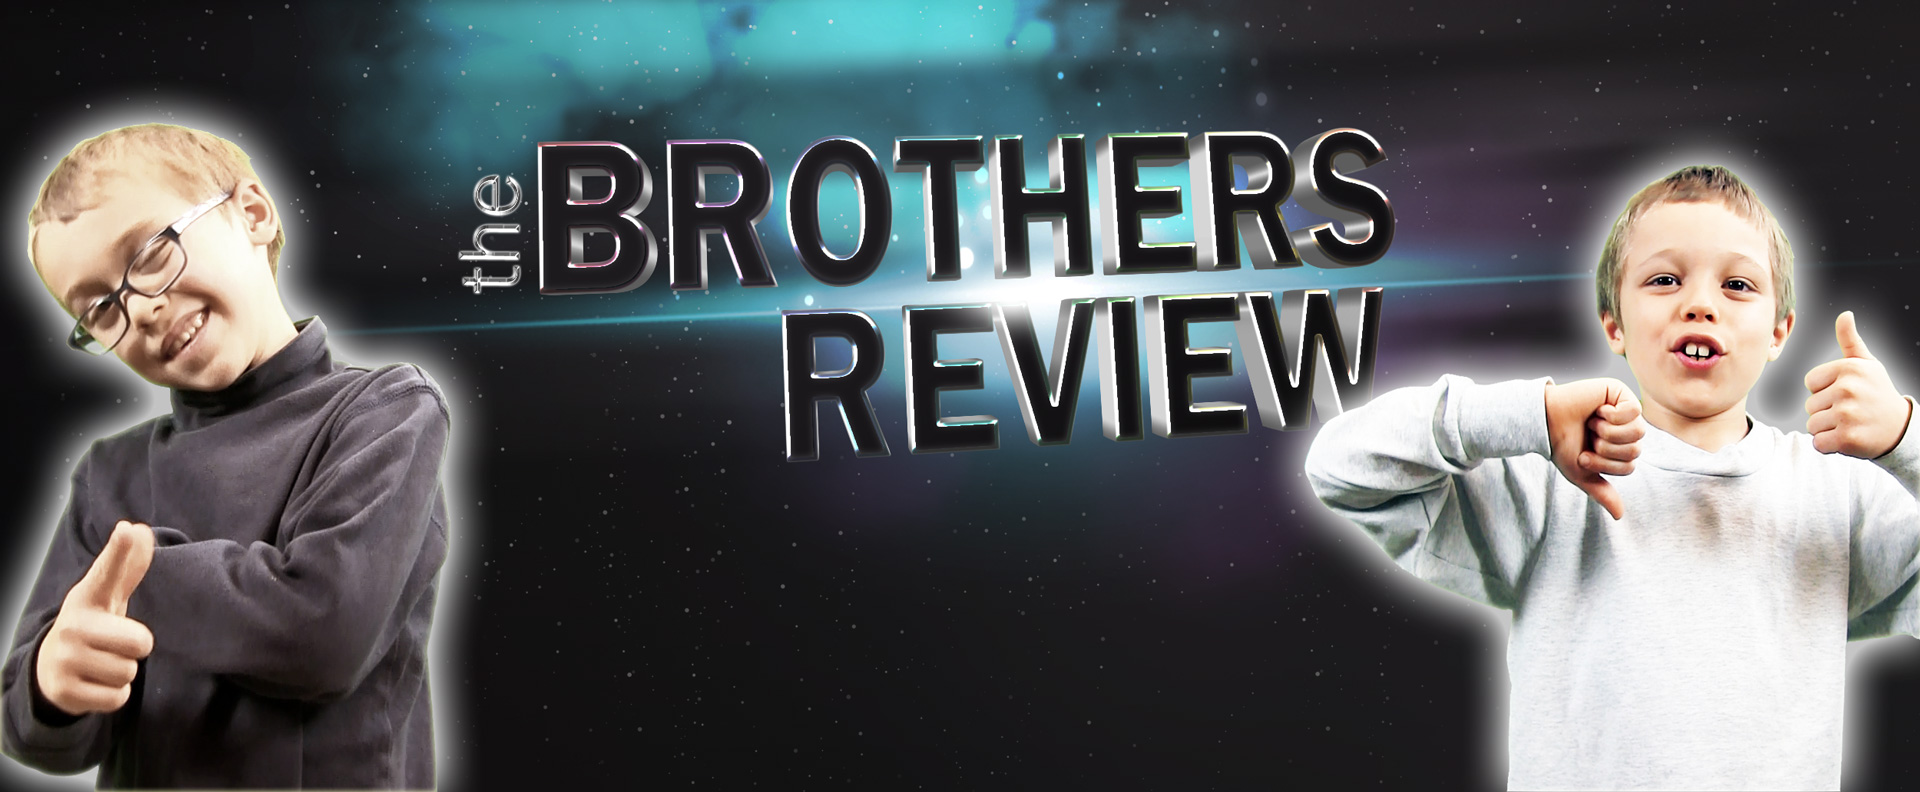 Toy reviews, game reviews, movie reviews, and more from The Brothers Review